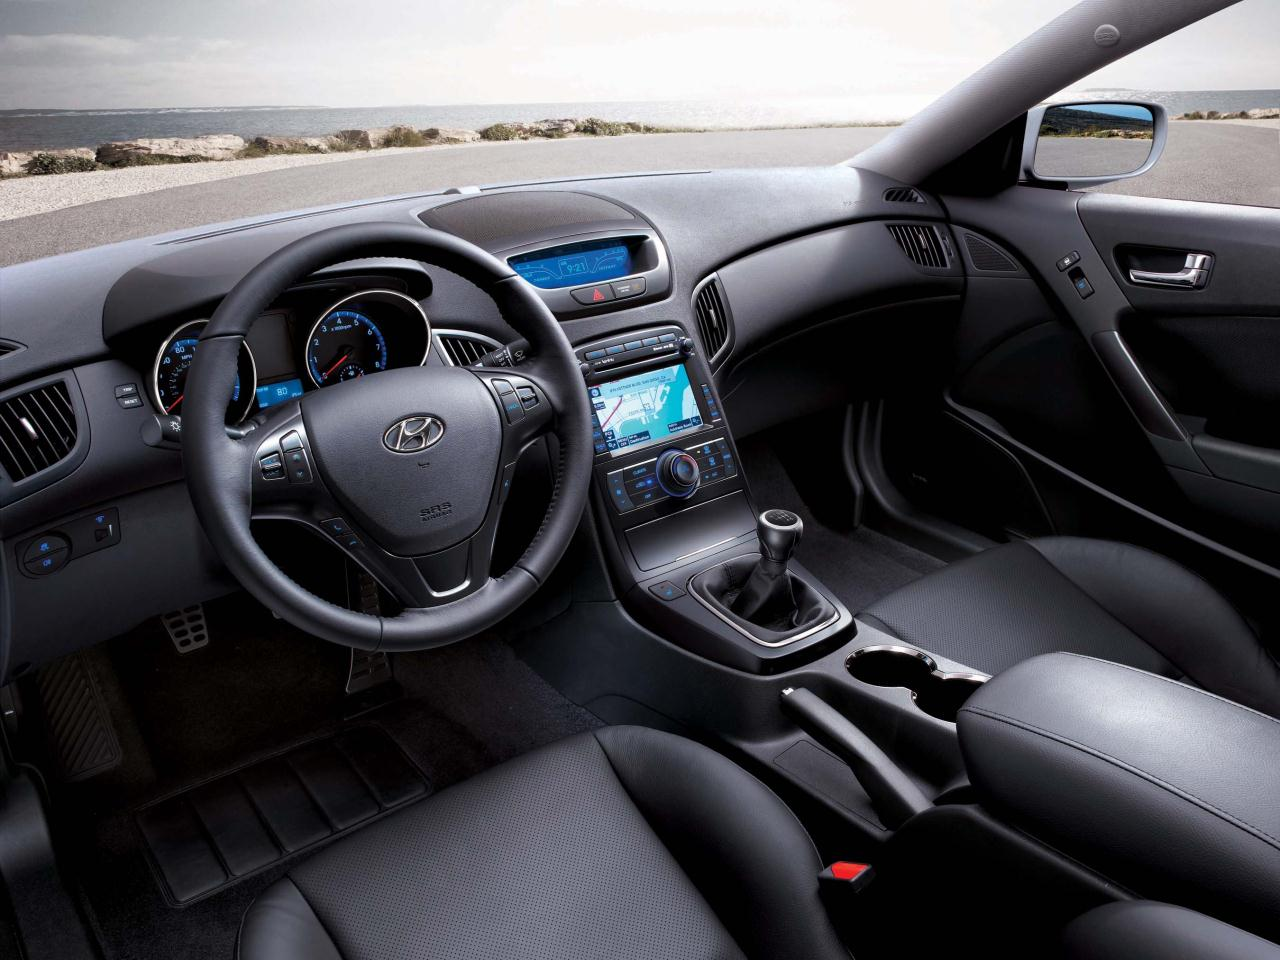 hight resolution of updates to the 2011 hyundai genesis coupe interior